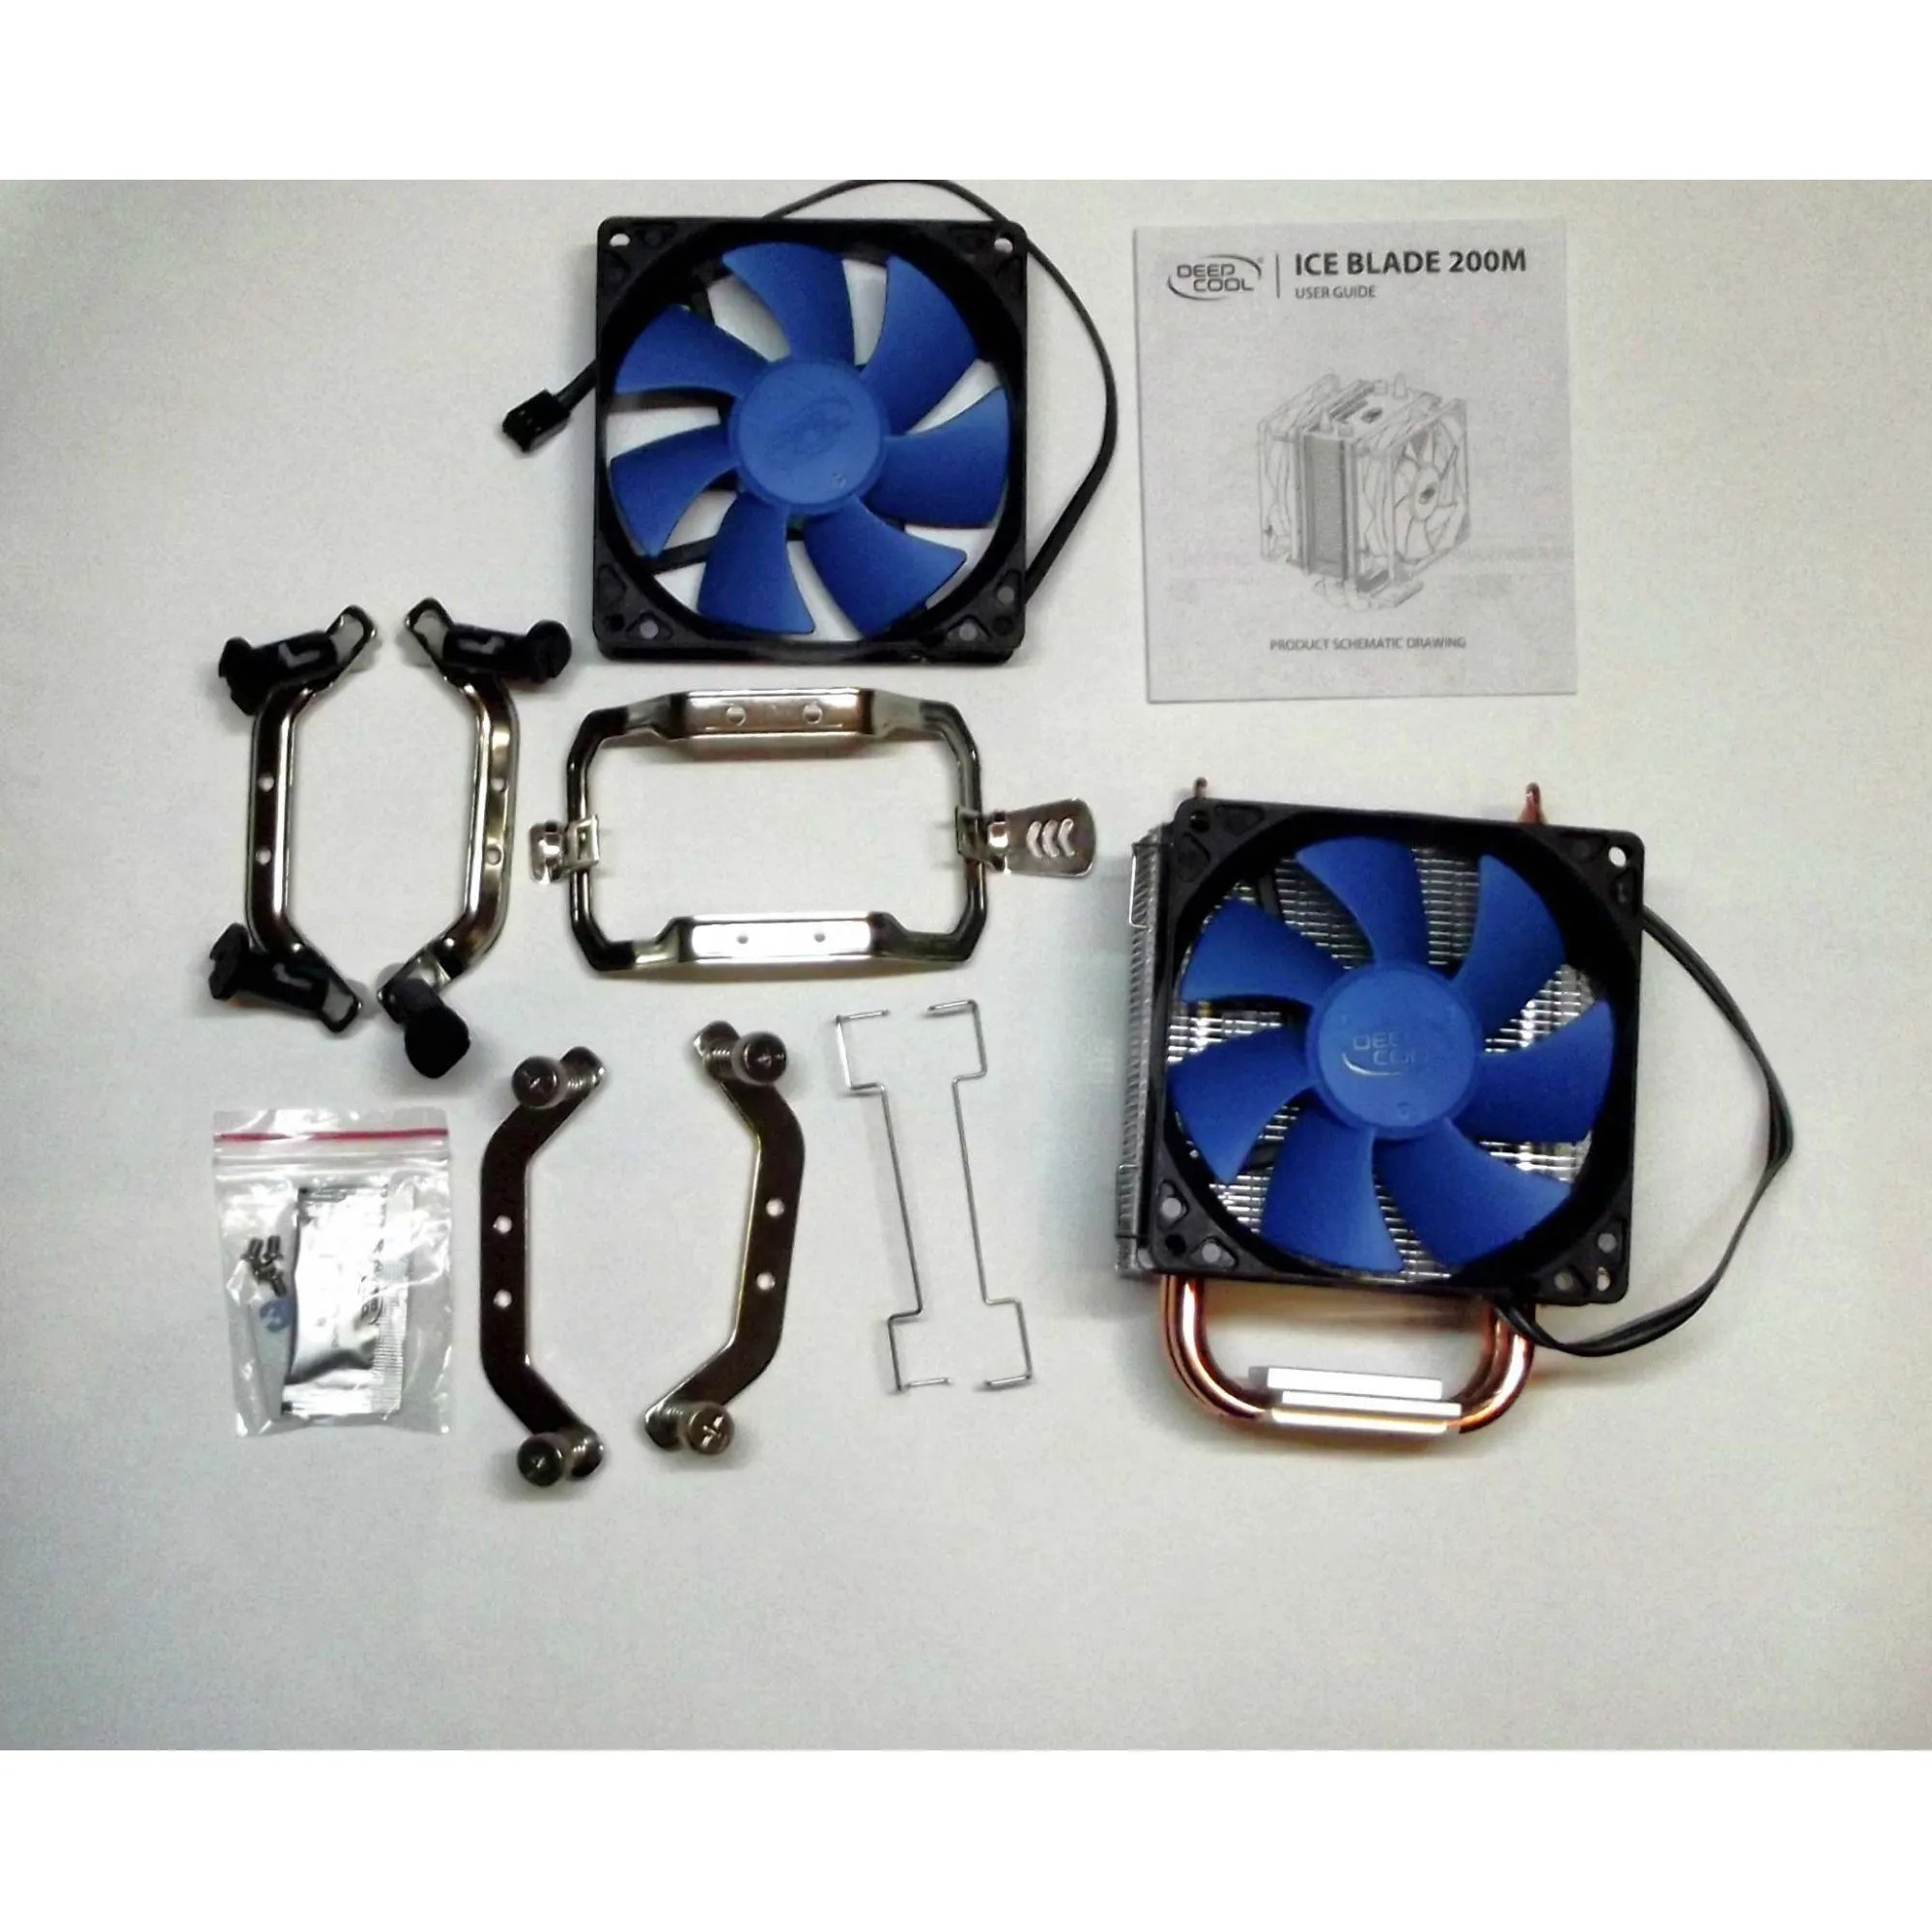 Cooler Para Processador Intel/amd Deepcool Ice Blade Blue 92mm 200m DP-MC8H2-IB200M